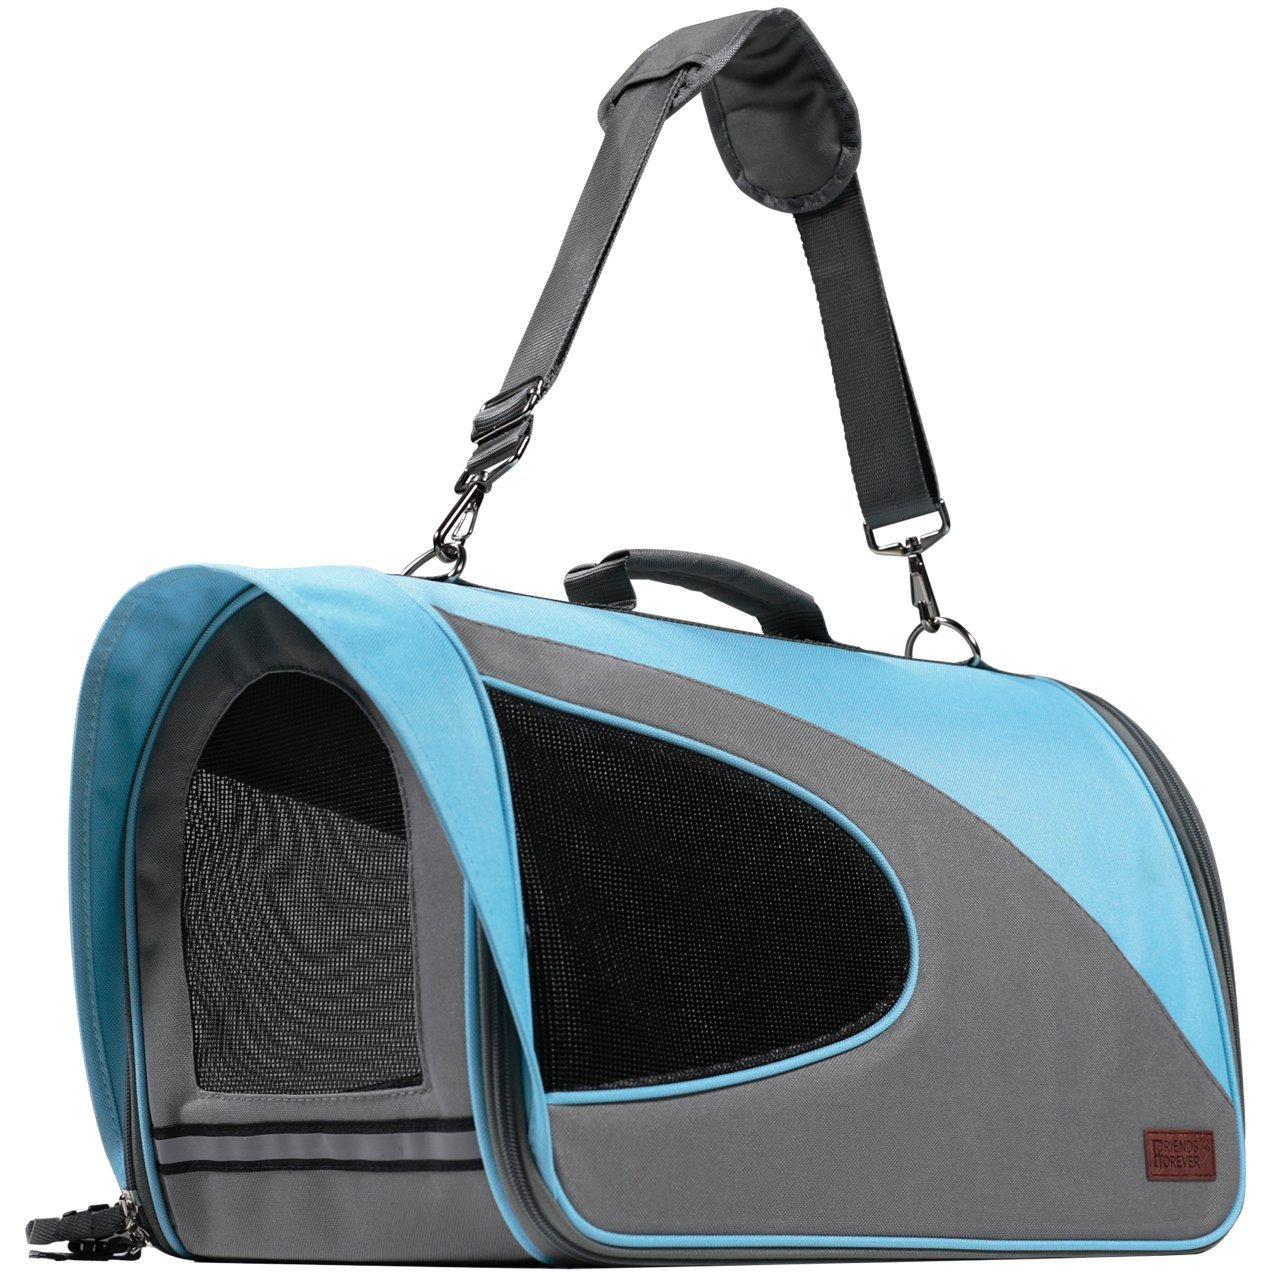 Airline Approved Pet Carrier for Cats, Small Dogs - Soft Cat Carriers Dog Travel Bag for Small Medium Large Cat Friends Forever PET66-0009